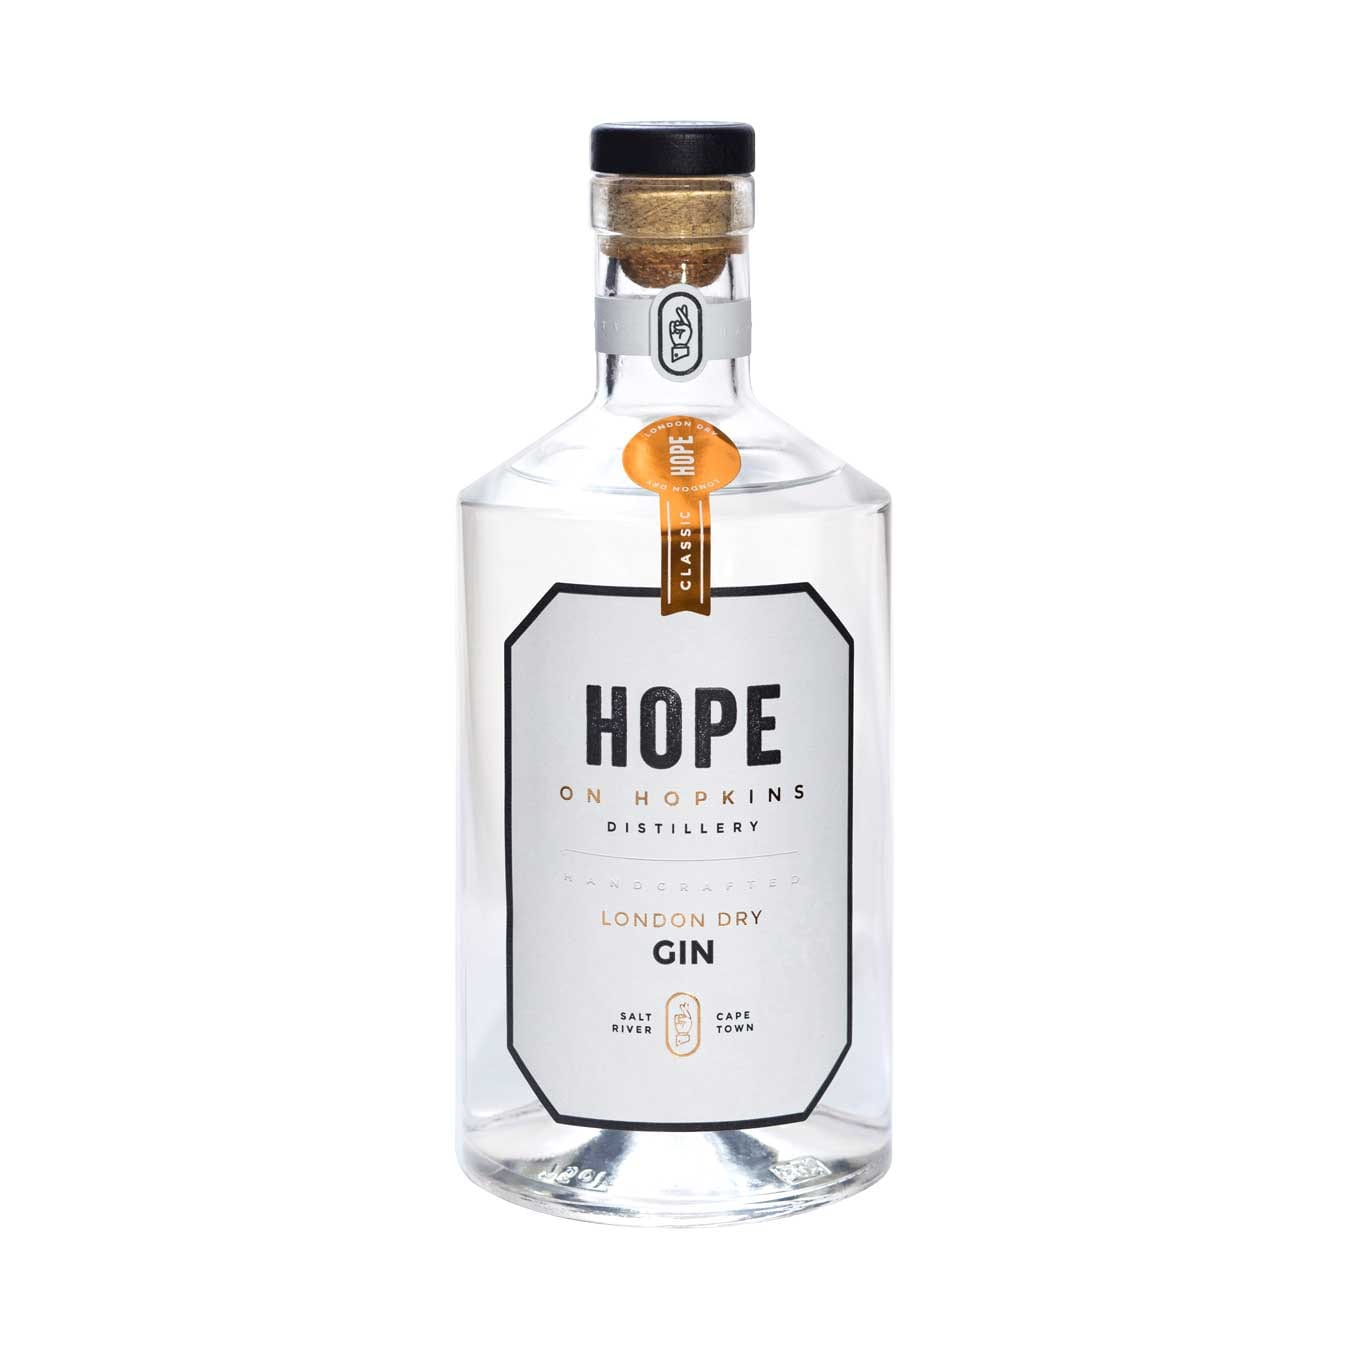 Hope on Hopkins London Dry Gin